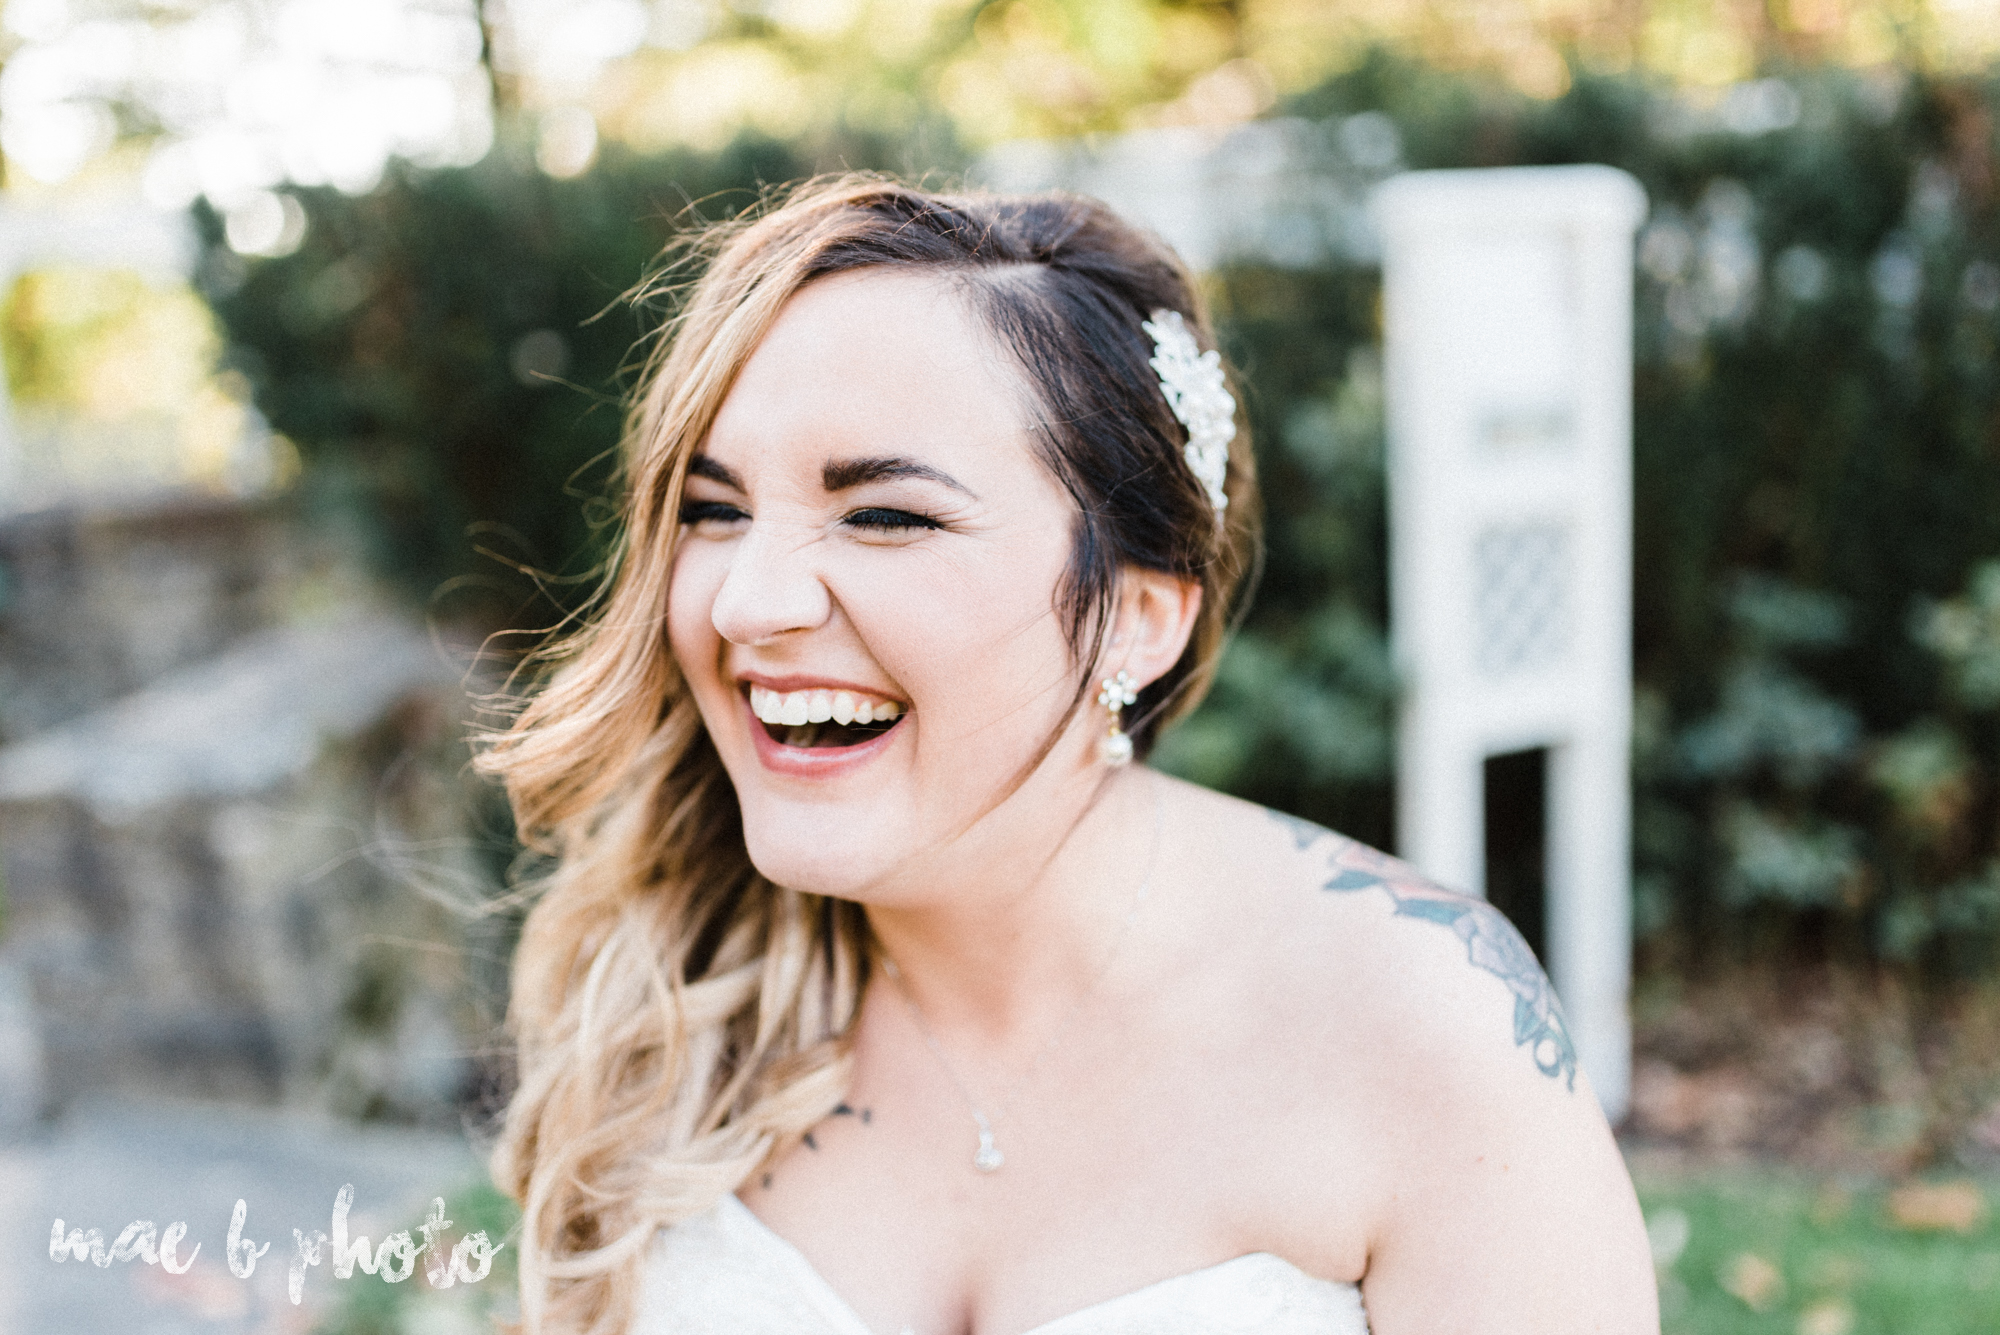 newly engaged and wedding planning in cleveland ohio youngstown ohio pittsburgh pennsylvania warren ohio becoming a mae b photo bride by youngstown wedding photographer mae b photo-16.jpg